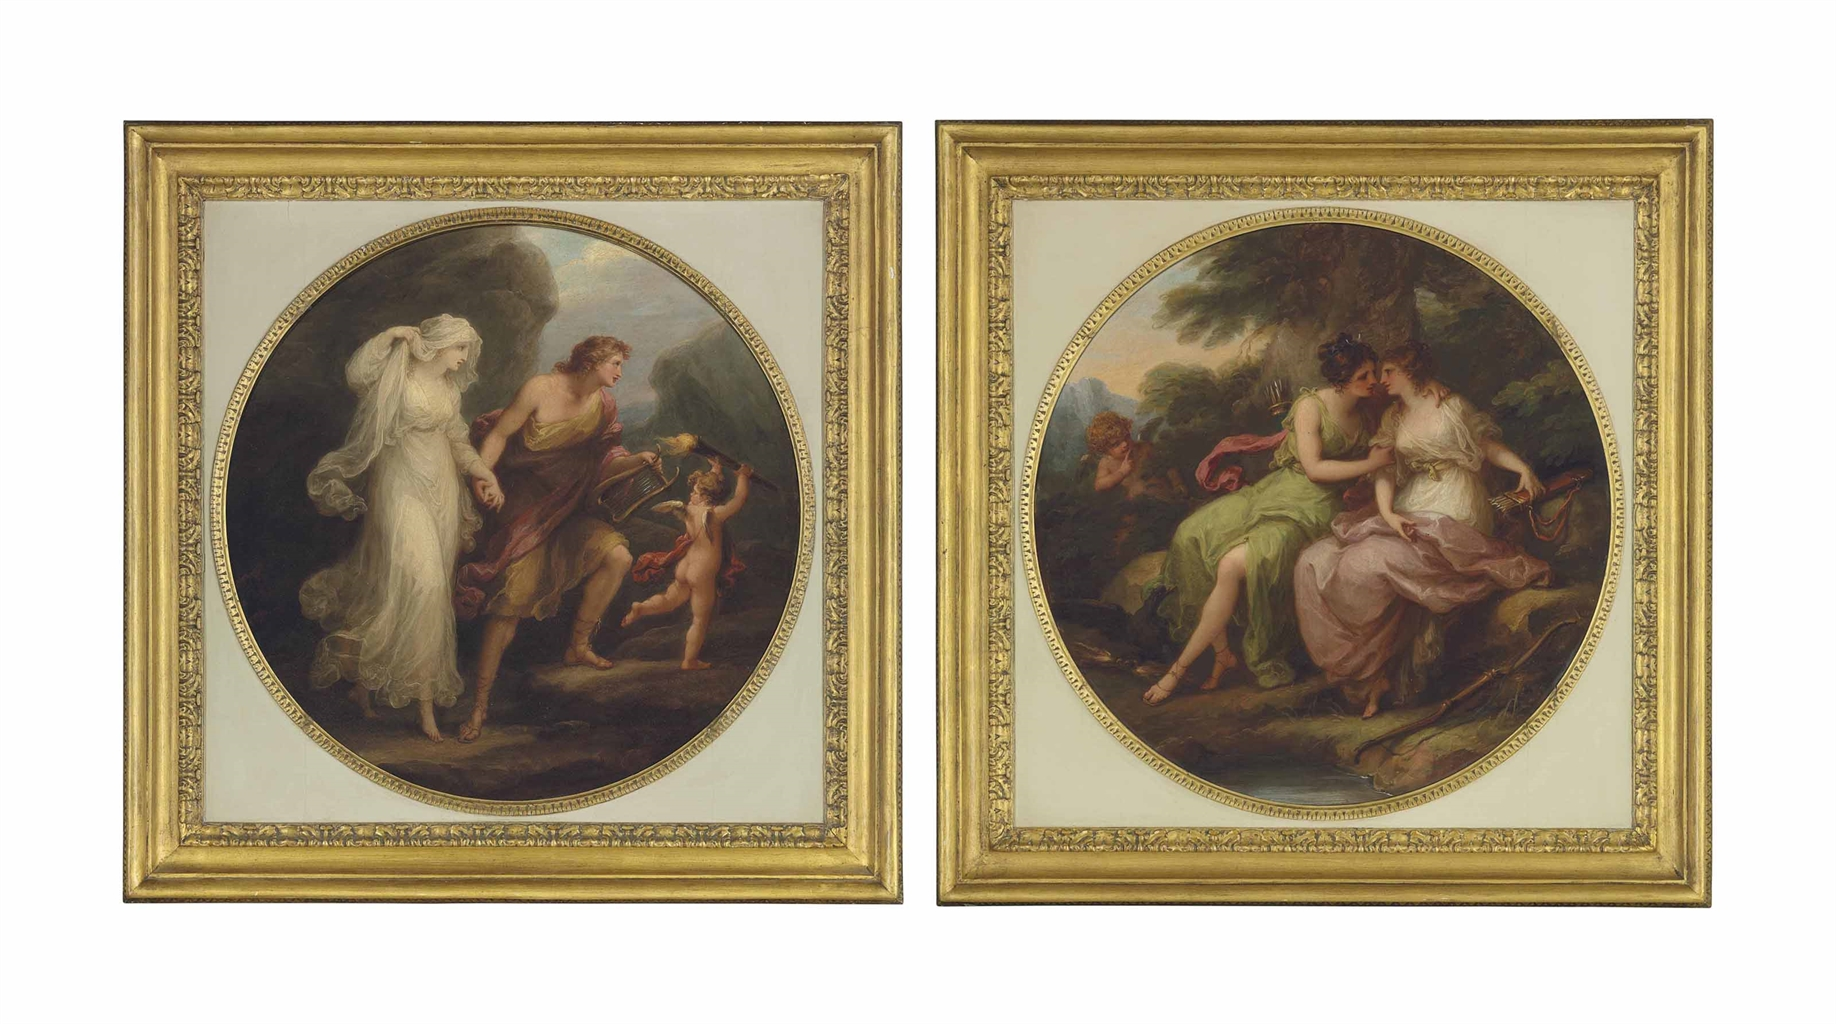 Orpheus and Eurydice; and Jupiter, in the guise of Diana, and Callisto